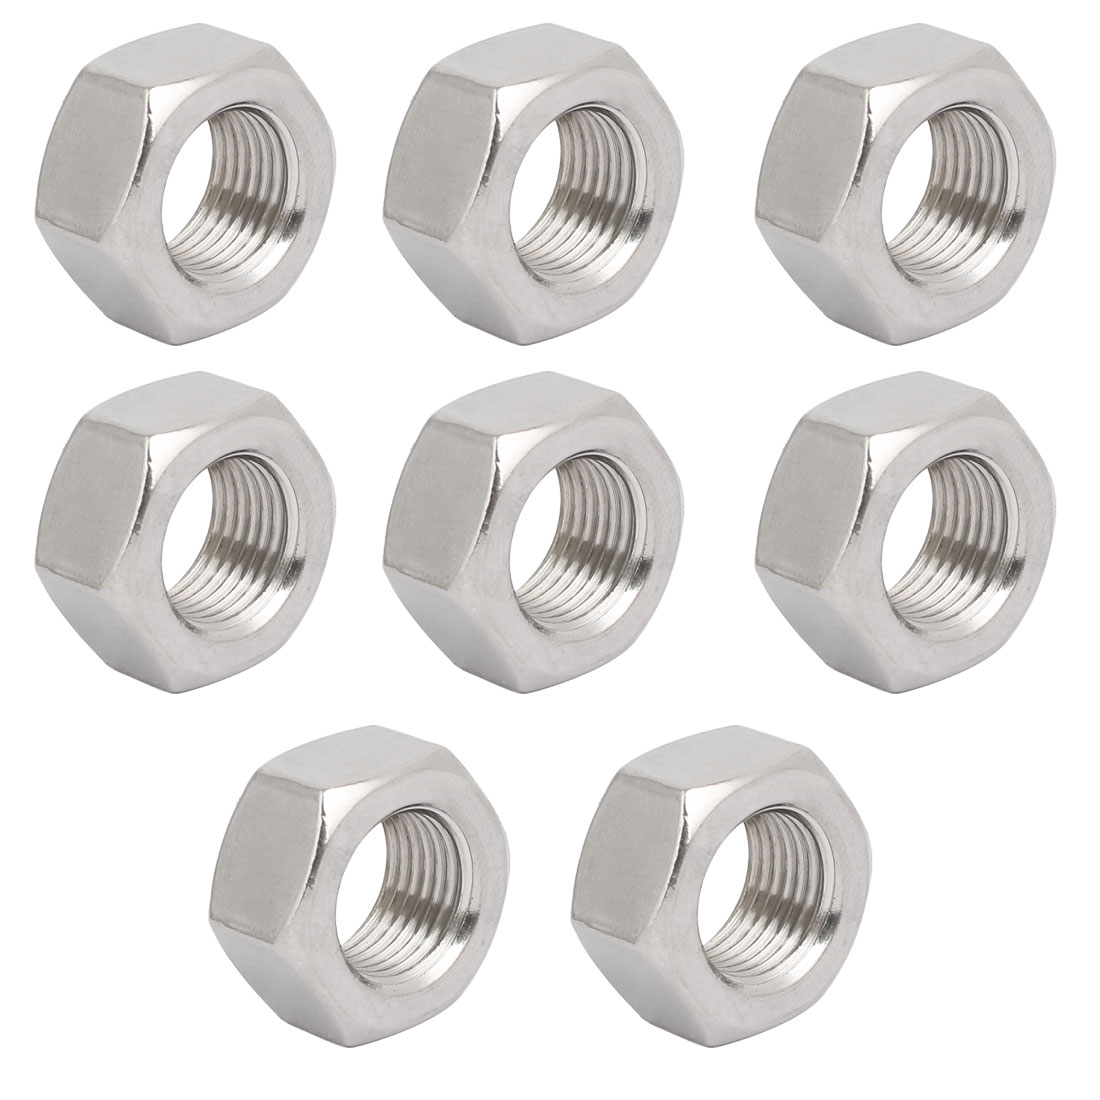 8pcs M16 x 1.5mm Pitch Metric Fine Thread 304 Stainless Steel Hex Nuts